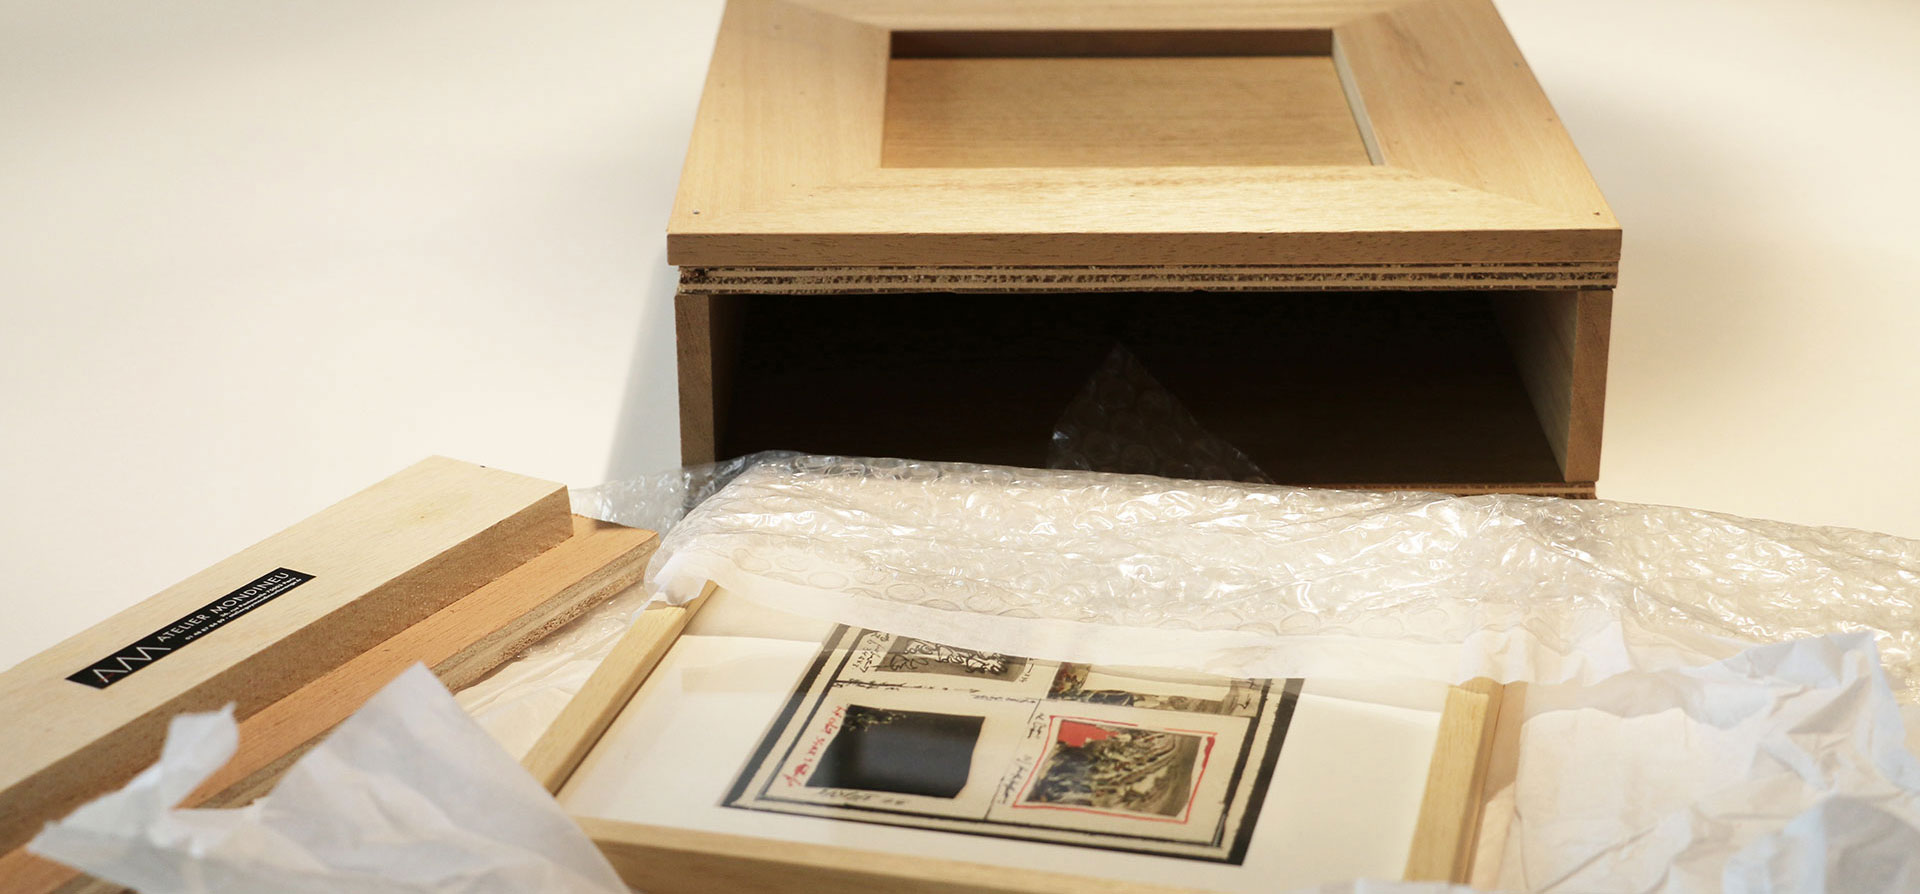 Protect your artwork by using are highly-qualified packaging services